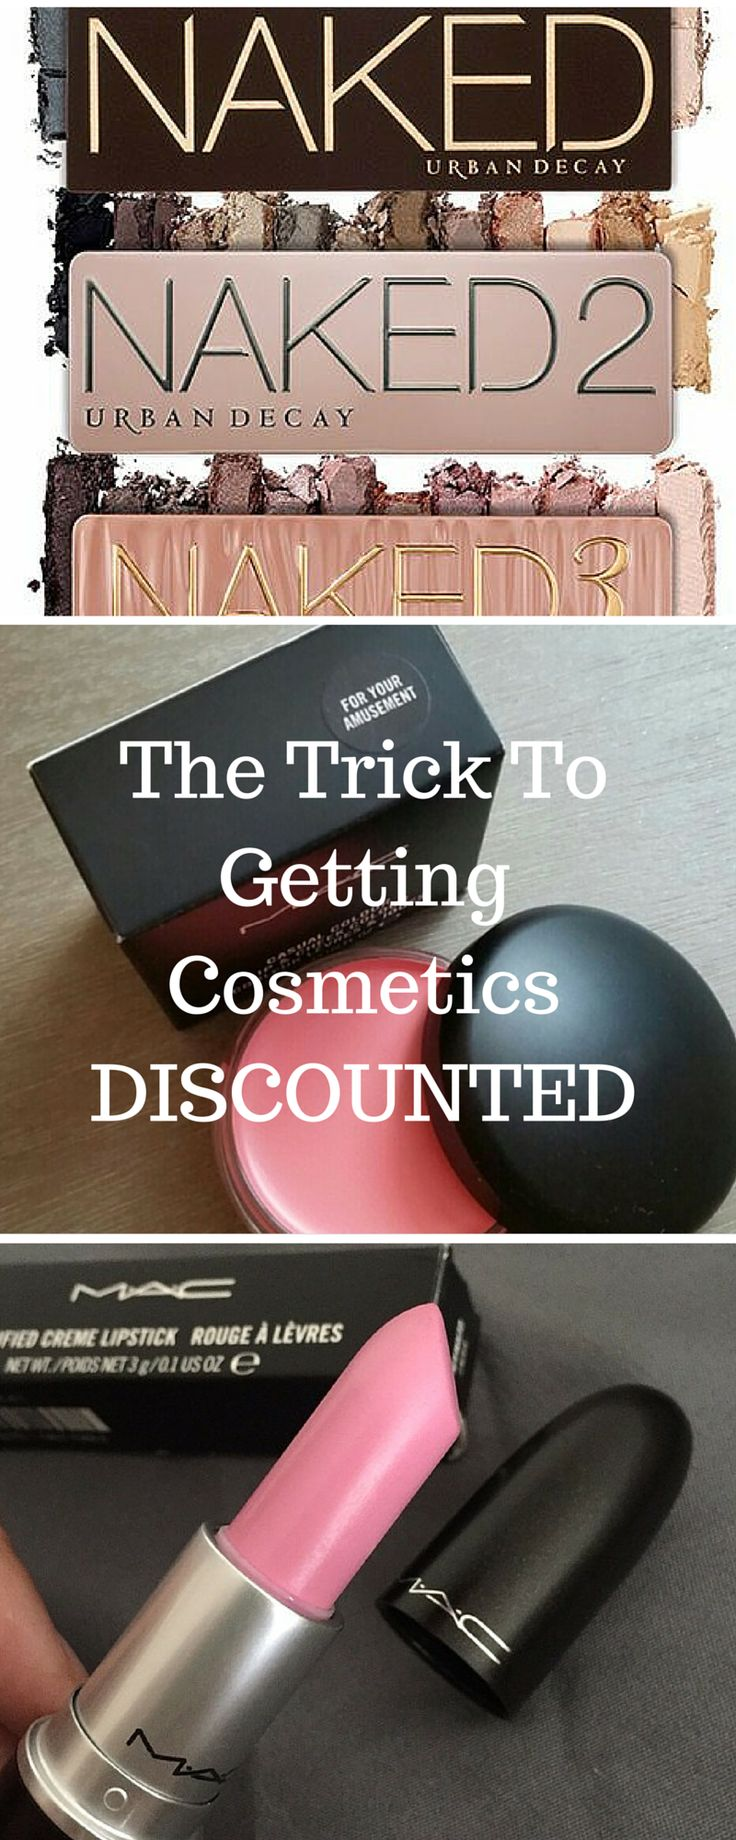 All Cosmetics-70% OFF!!! Don't miss out on the sale! Shop MAC, YSL, and other brands at up to 70% off retail prices. Click image to install the FREE app now.